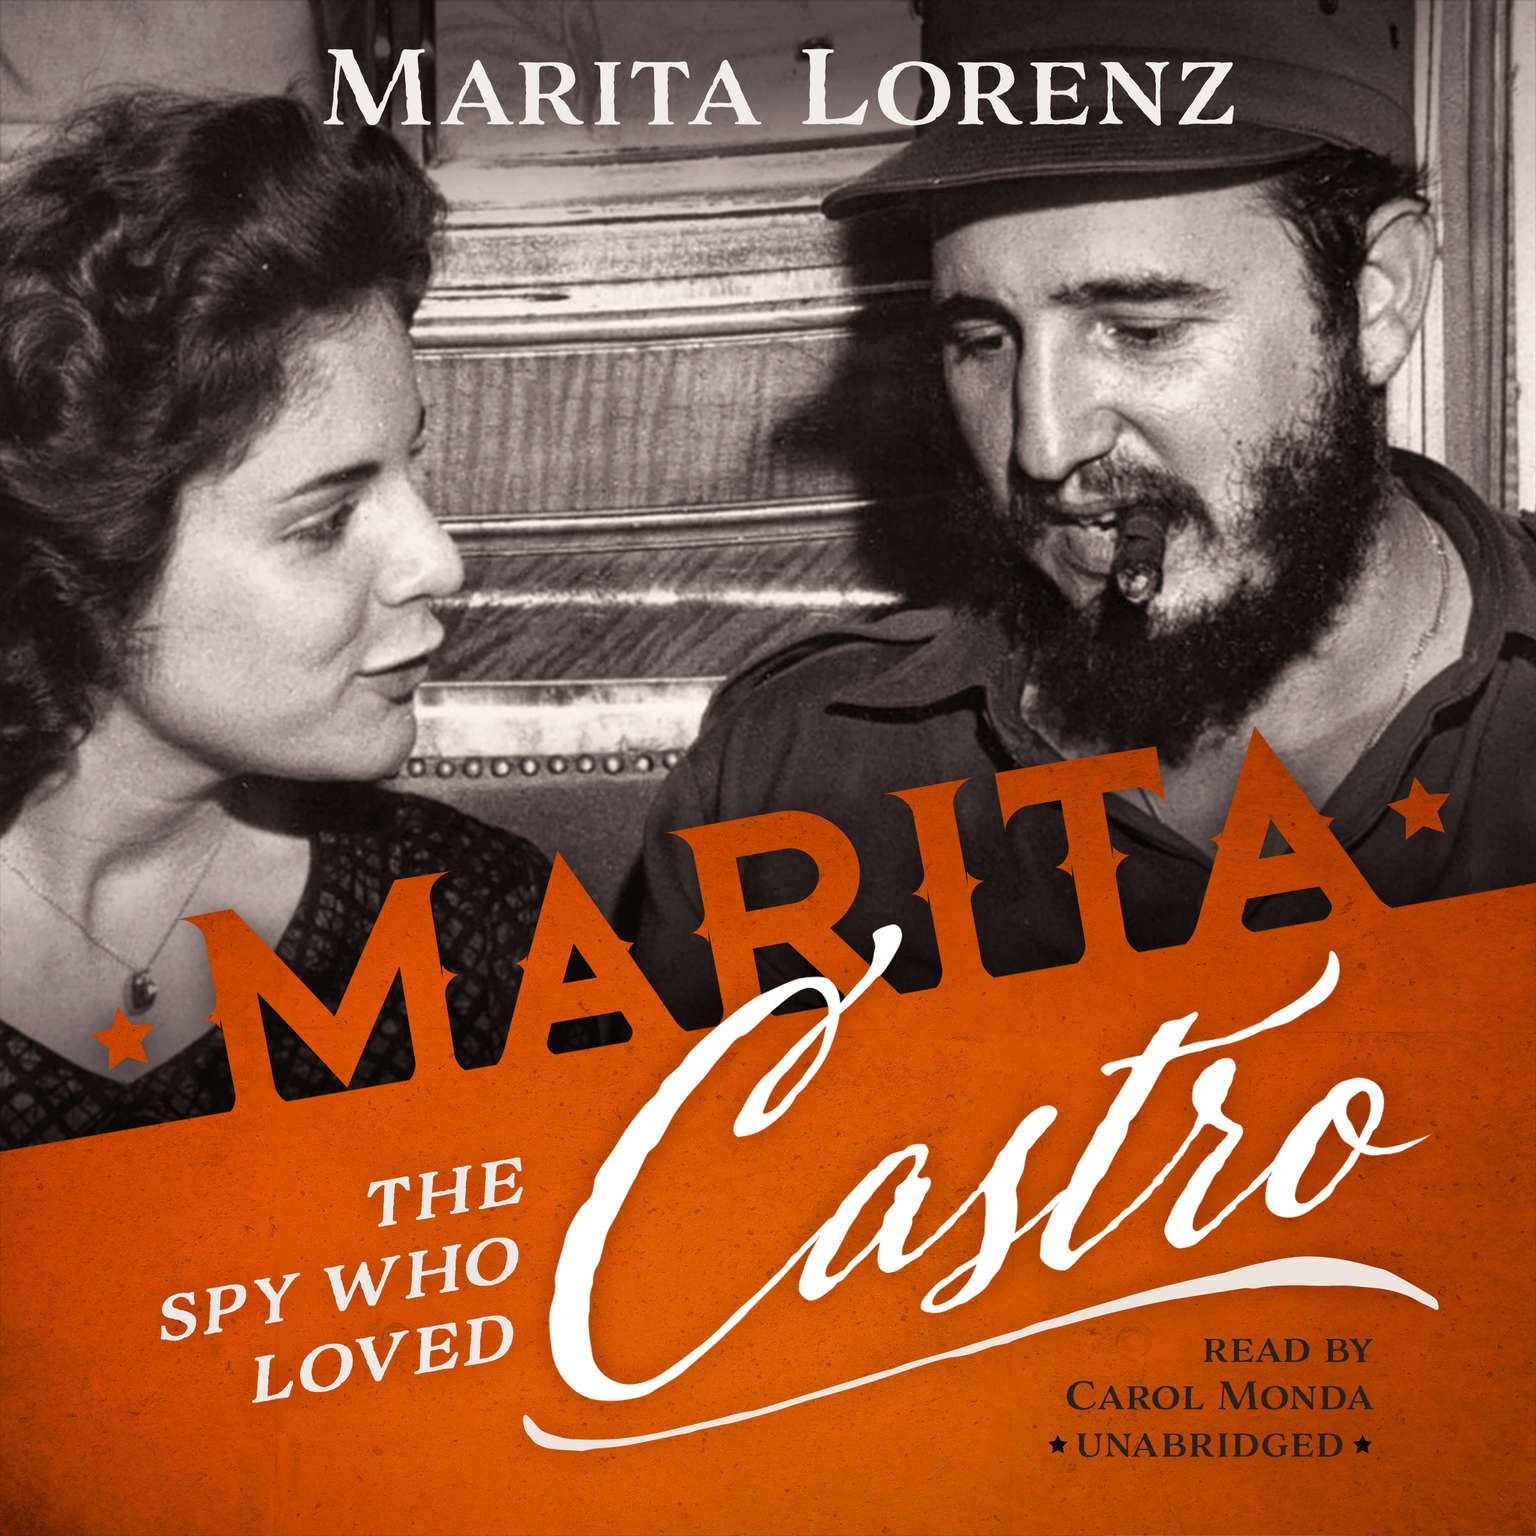 Printable Marita: The Spy Who Loved Castro Audiobook Cover Art